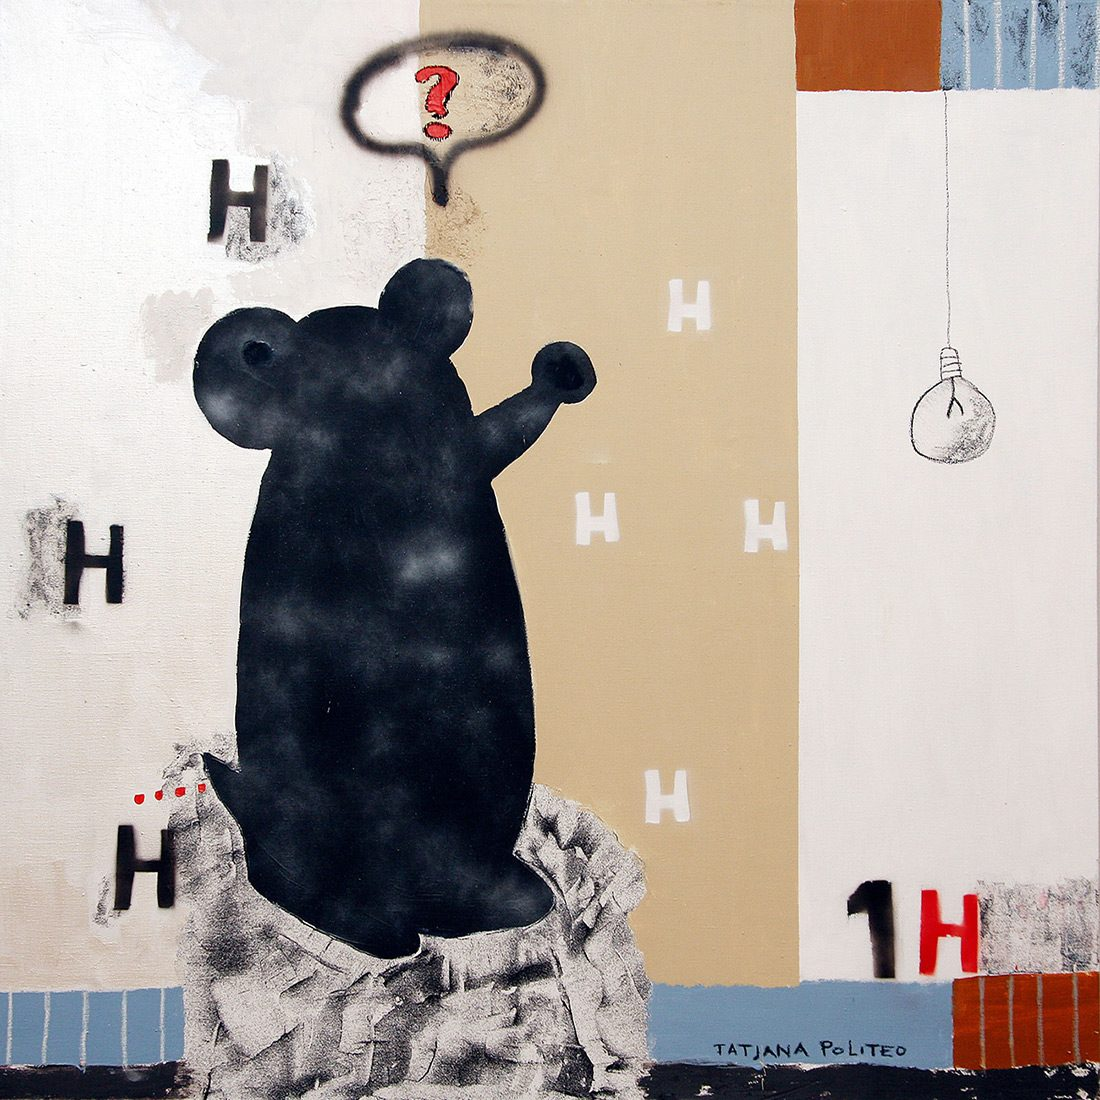 kombinirana tehnika / mixed media, 150x150 cm, 2010.